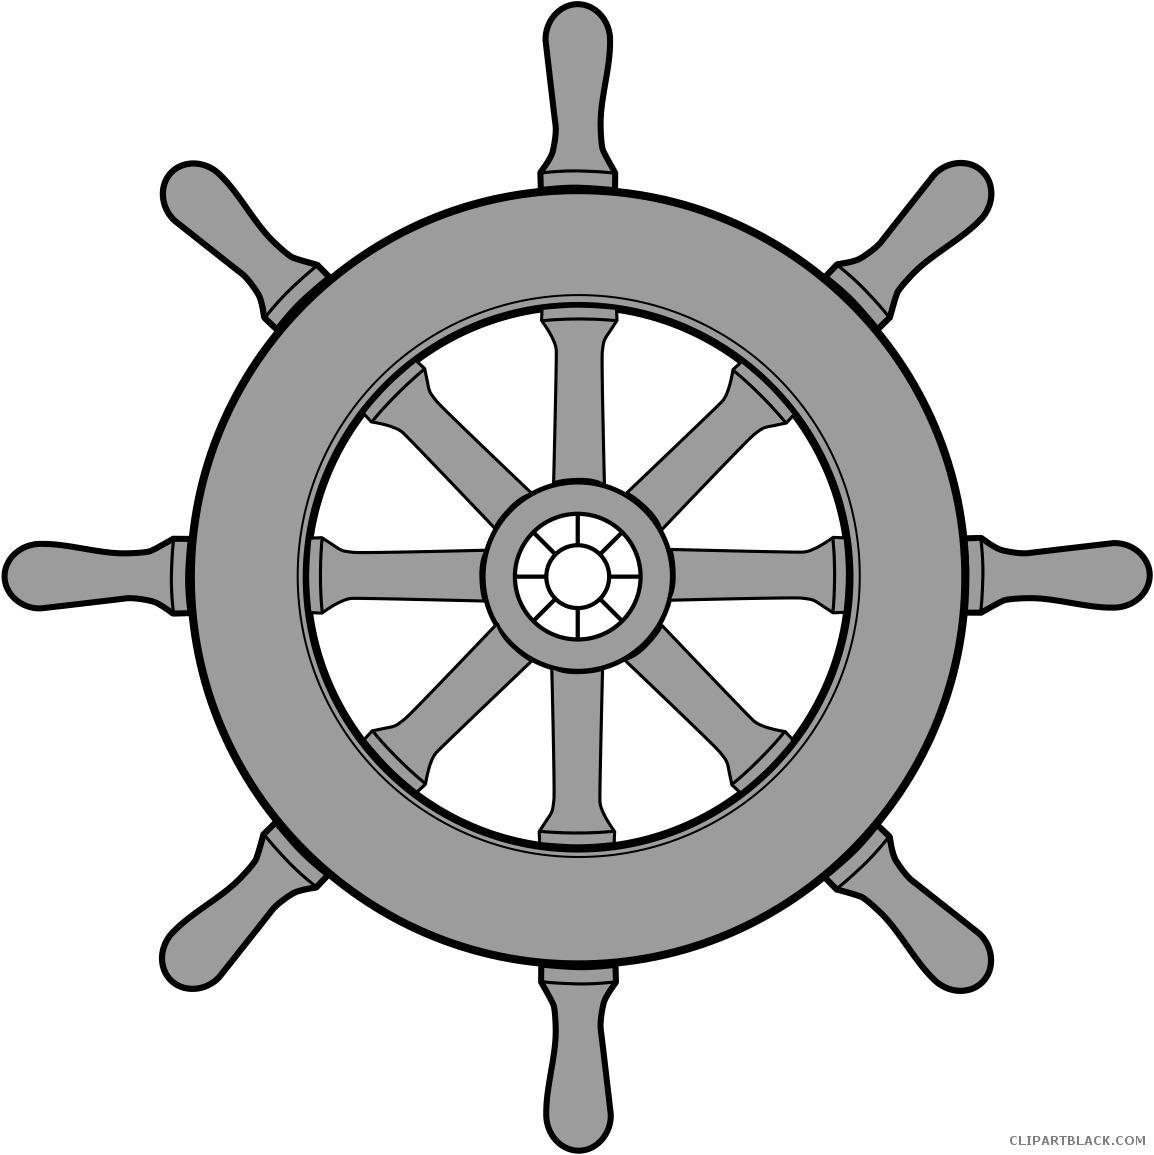 svg black and white download Page of clipartblack com. Ship wheel clipart black and white